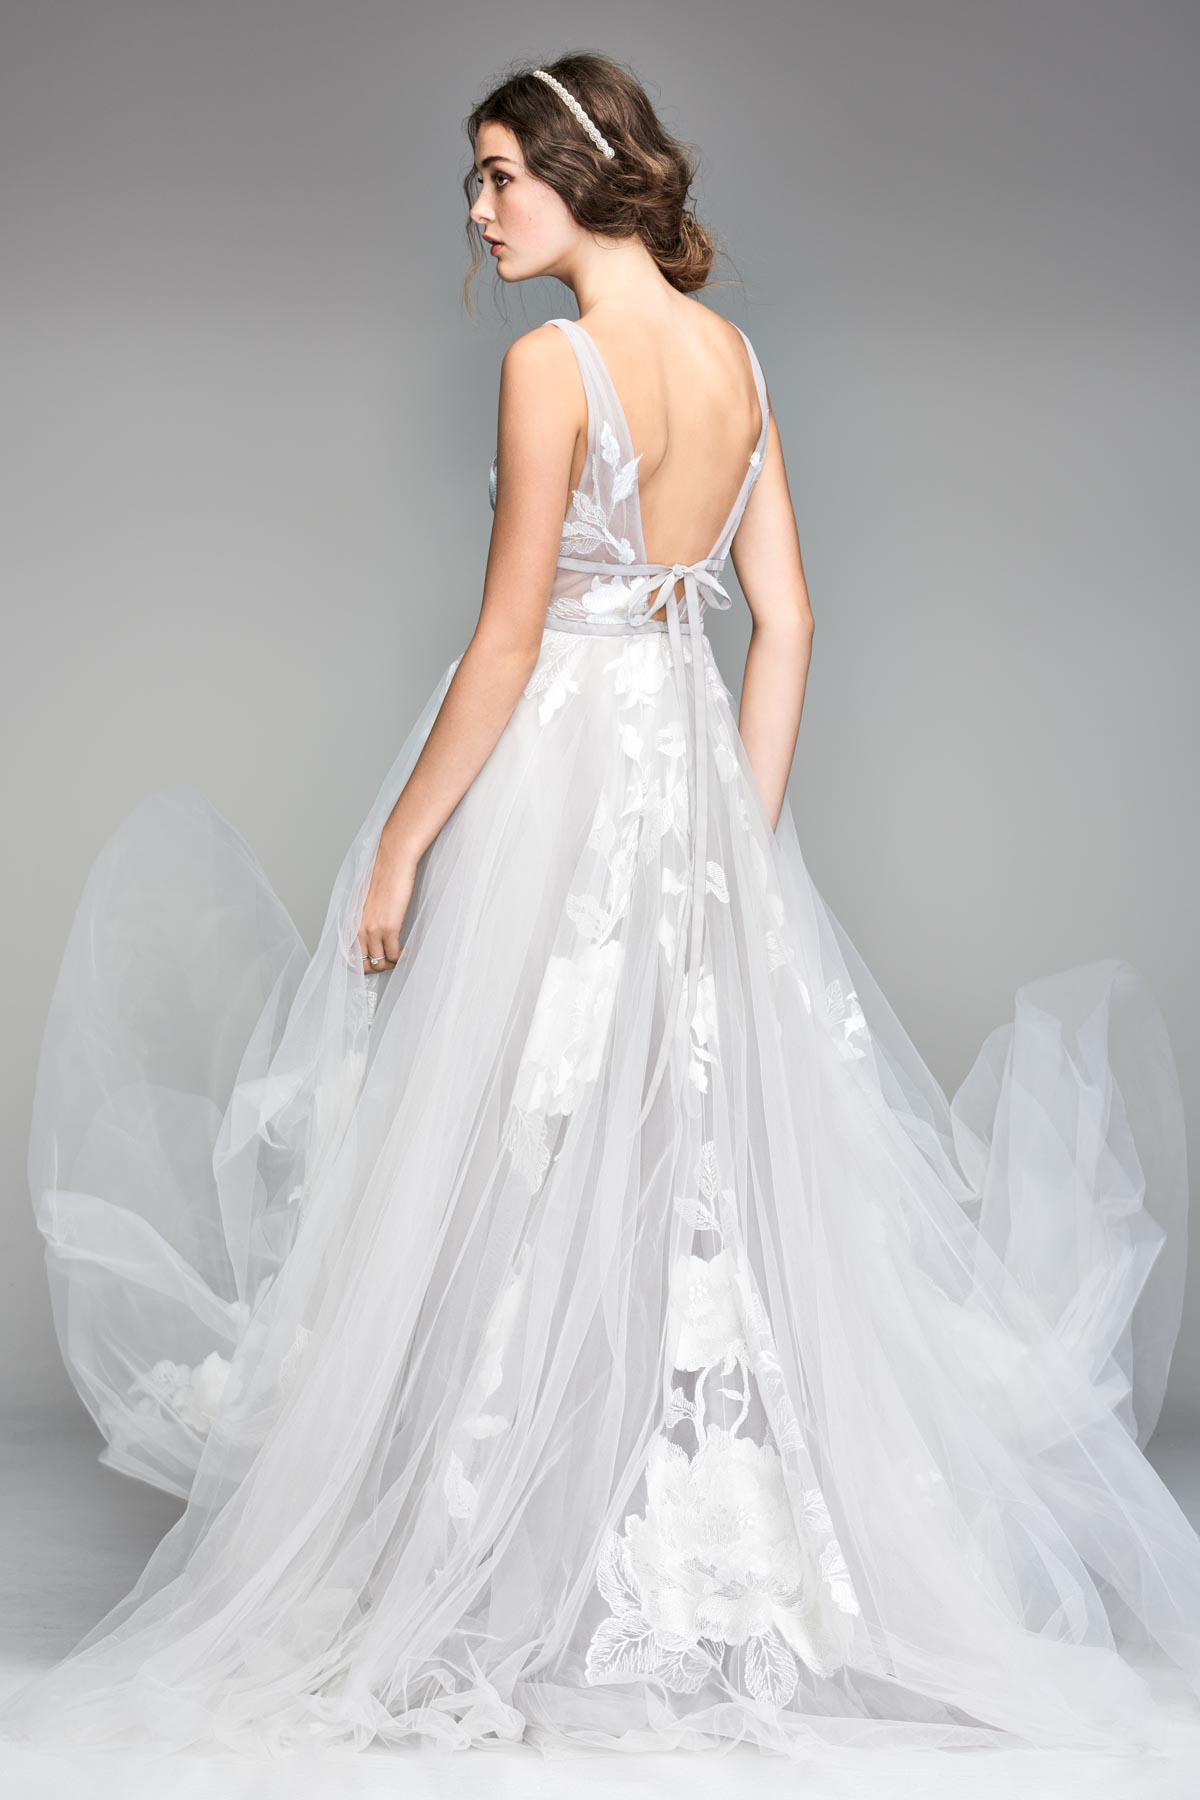 Galatea 50704 | Willowby Brides | Willowby